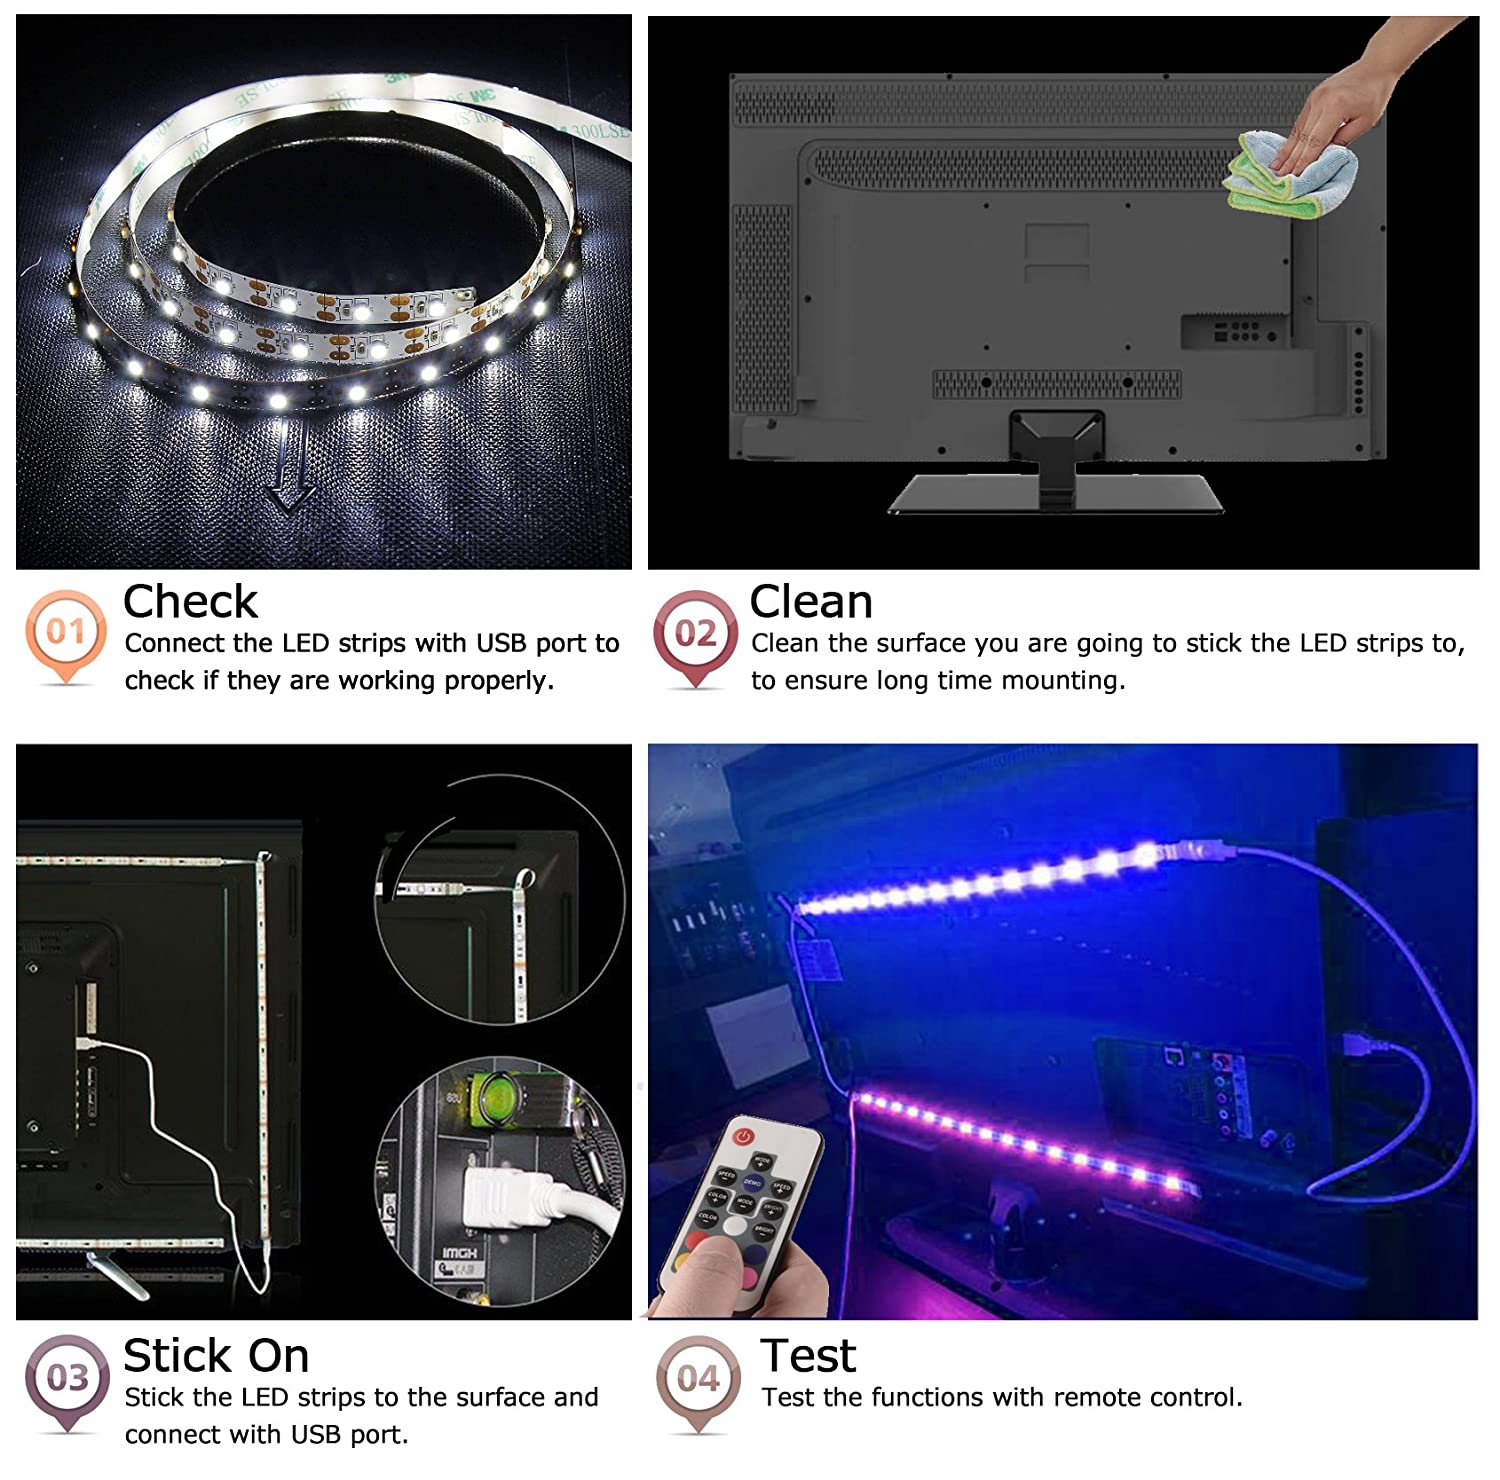 Amazon tobbiheim led tv backlight neon accent 2 m led lights amazon tobbiheim led tv backlight neon accent 2 m led lights strips with remote leds bias lighting for 40 to 60 inch hdtv flat screen tv accessories aloadofball Choice Image